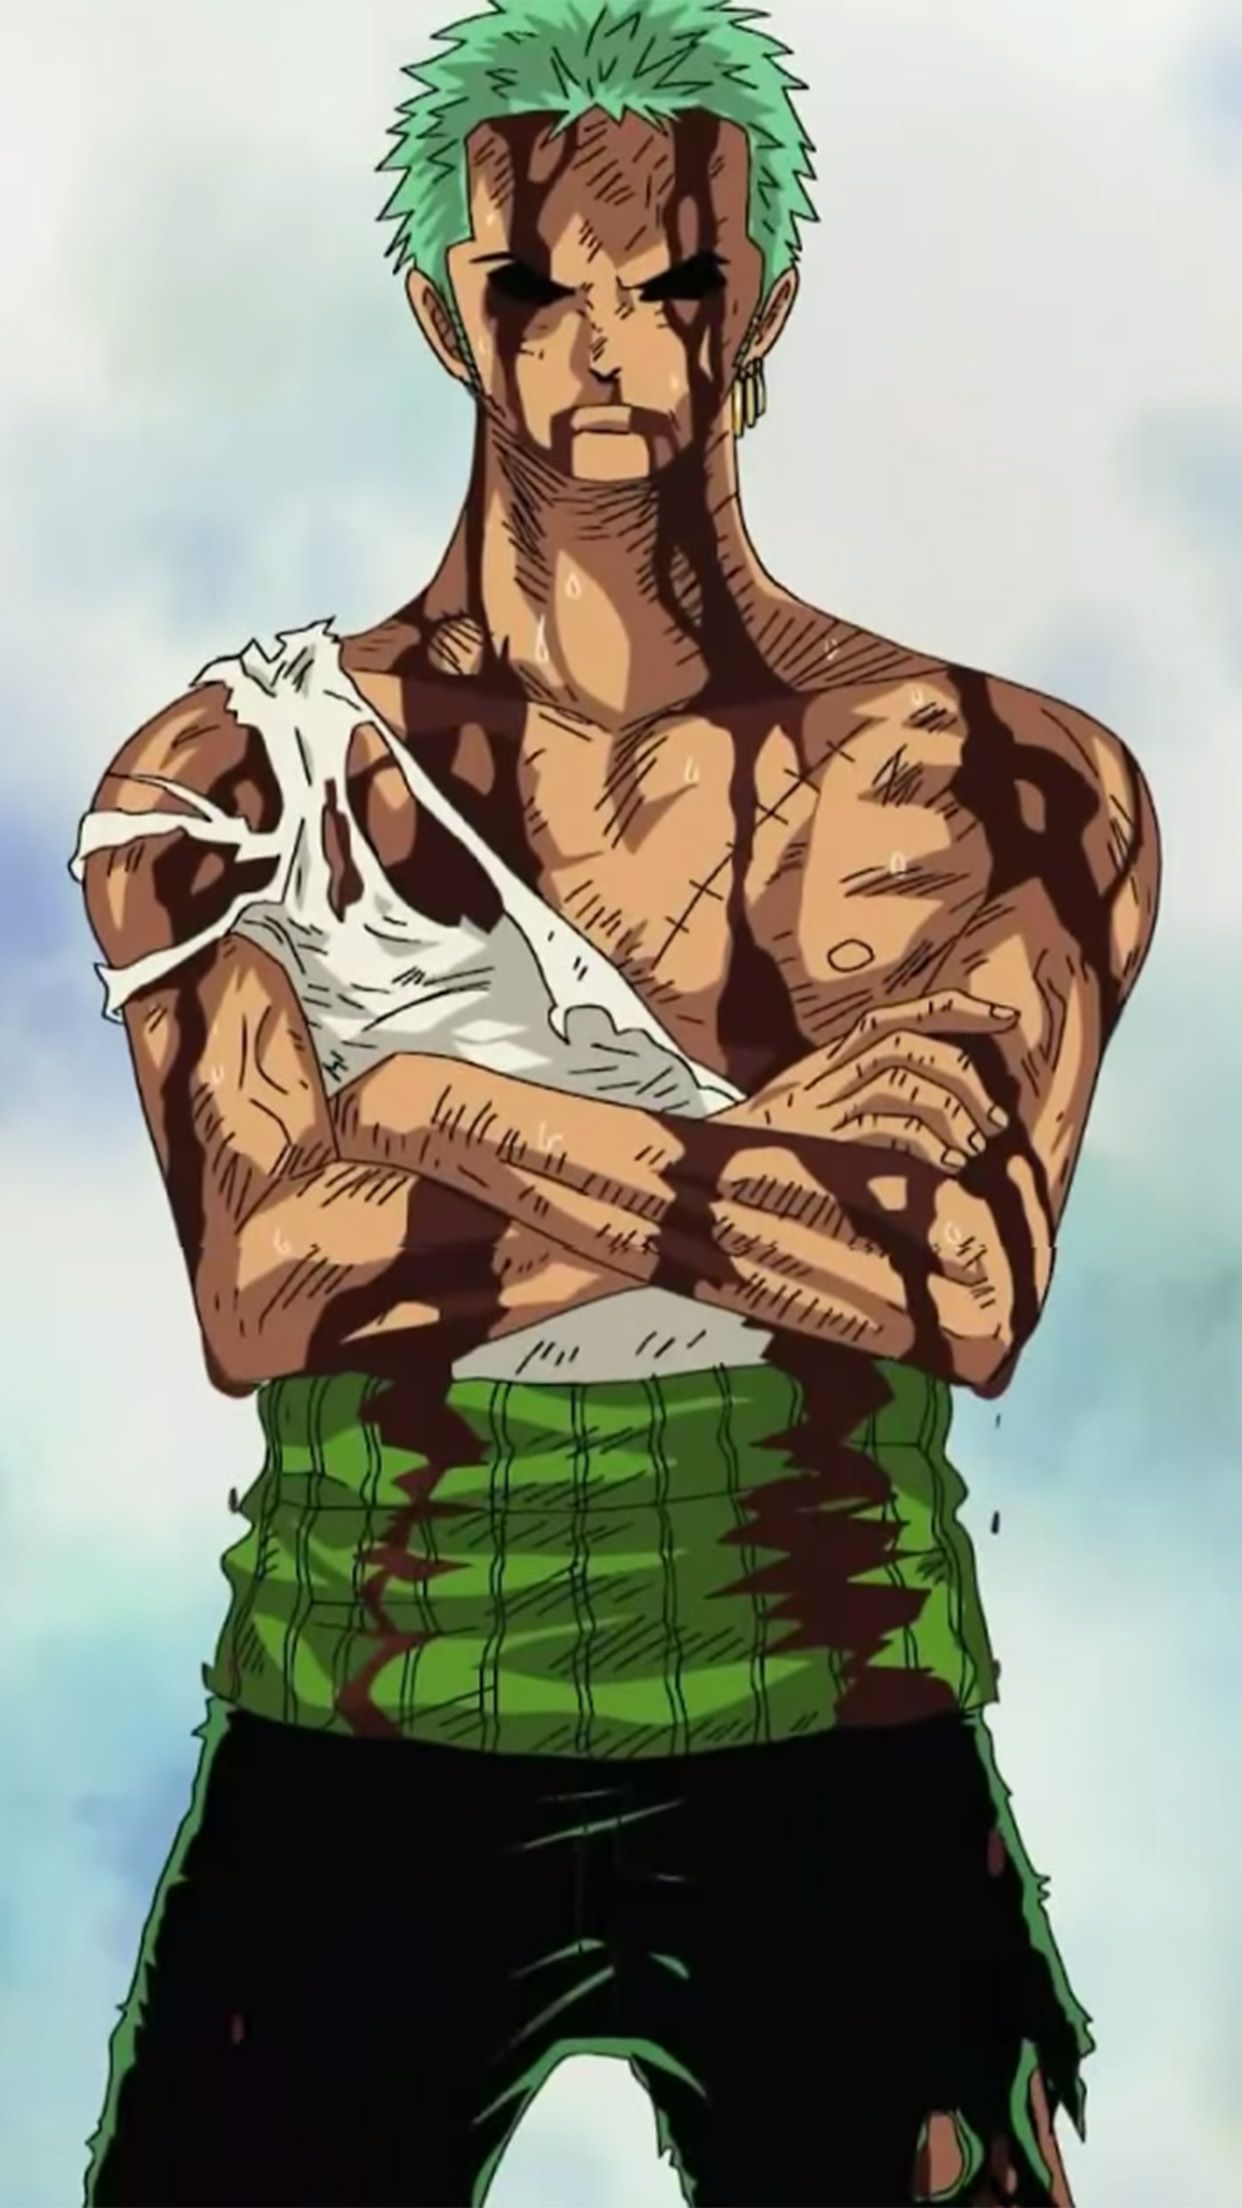 Roronoa Zoro Wallpaper For Iphone 11 Pro Max X 8 7 6 Free Download On 3wallpapers In 2020 Zoro One Piece One Piece Wallpaper Iphone Roronoa Zoro